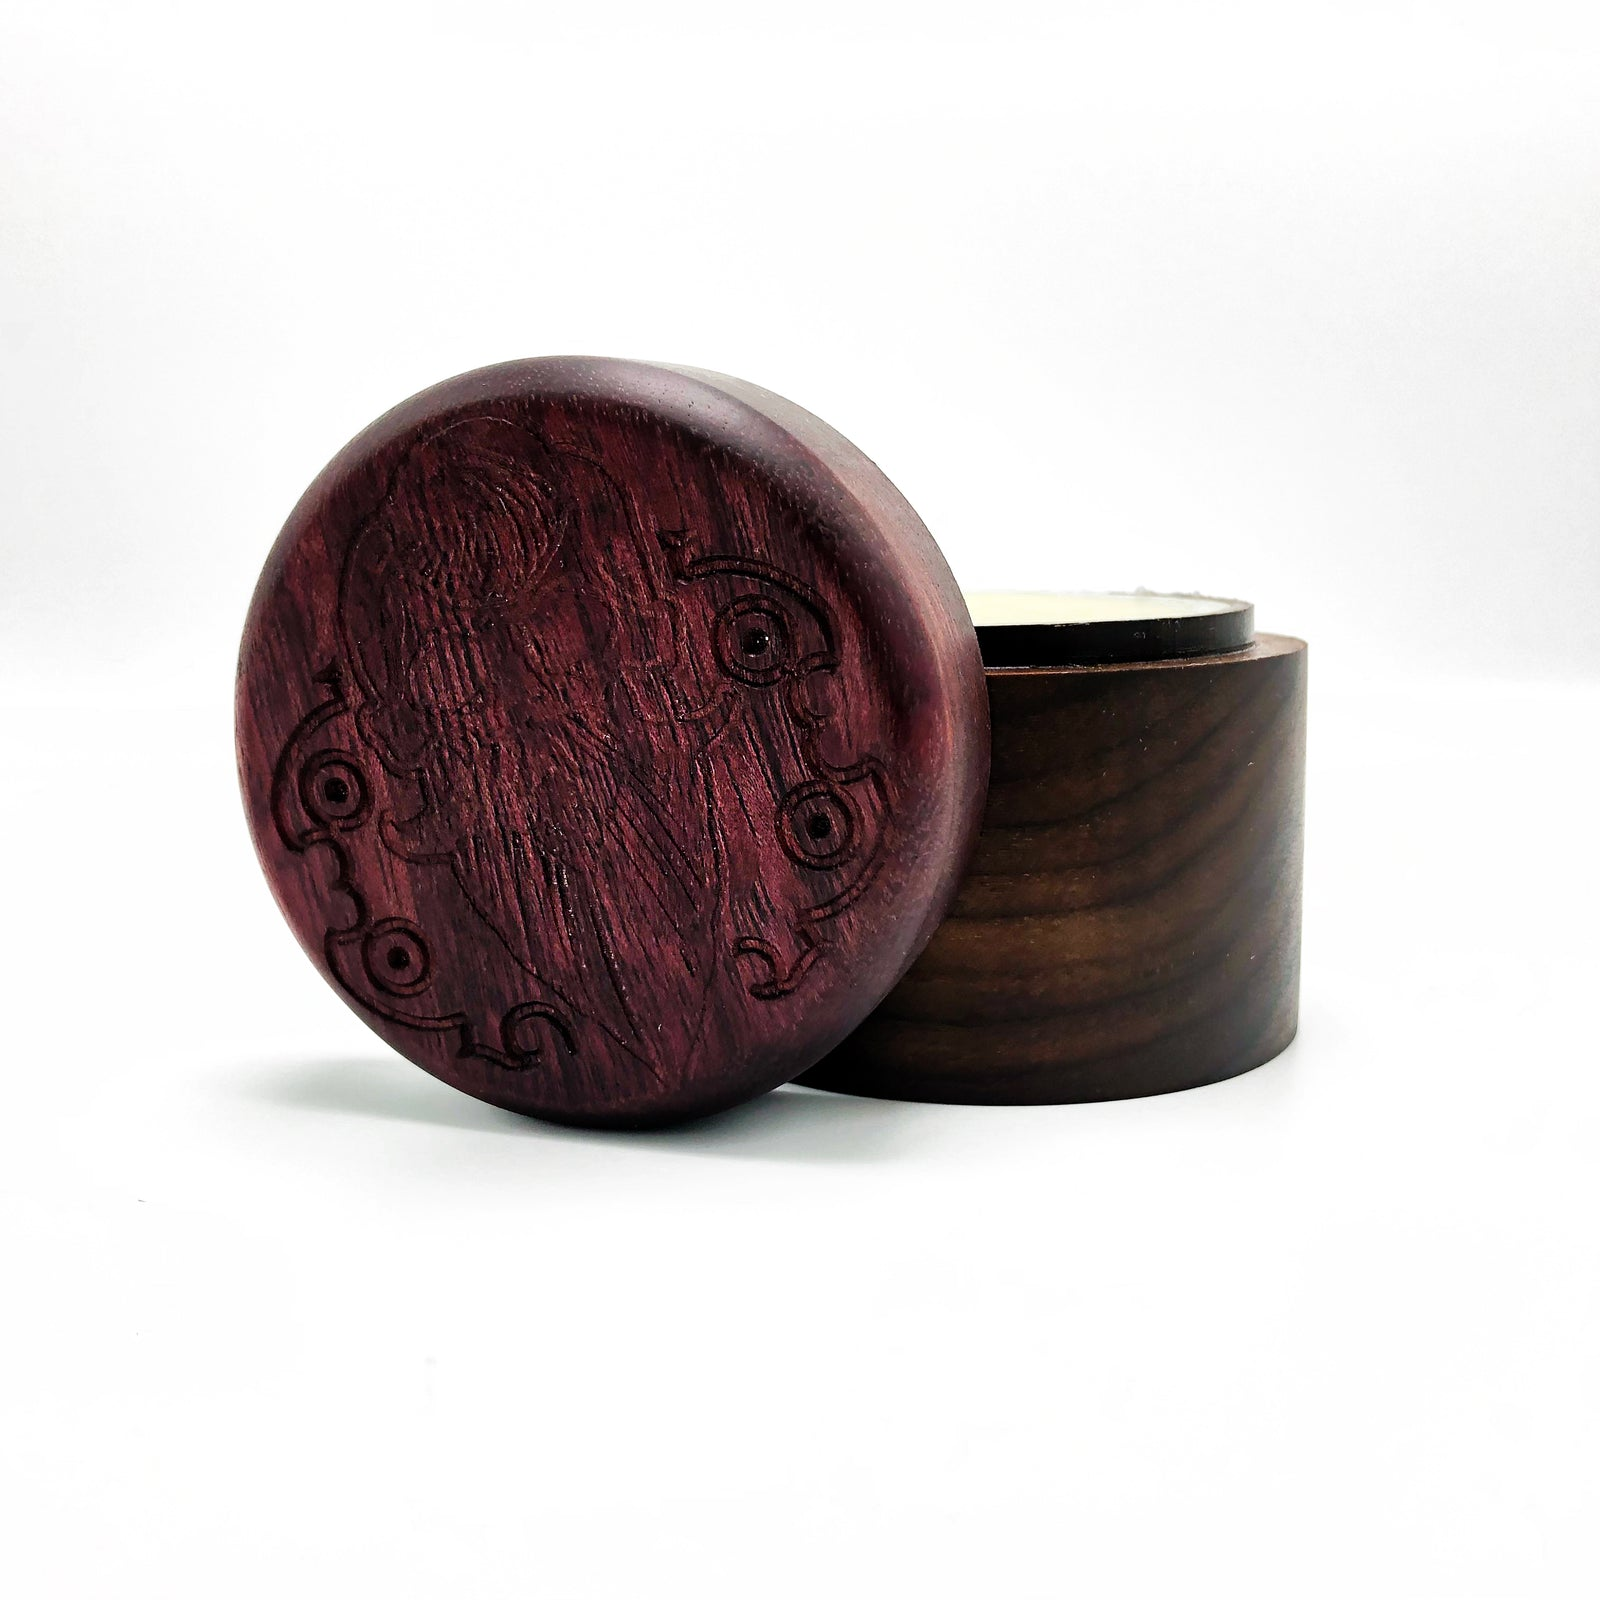 Limited Edition Wooden Pomade Jar